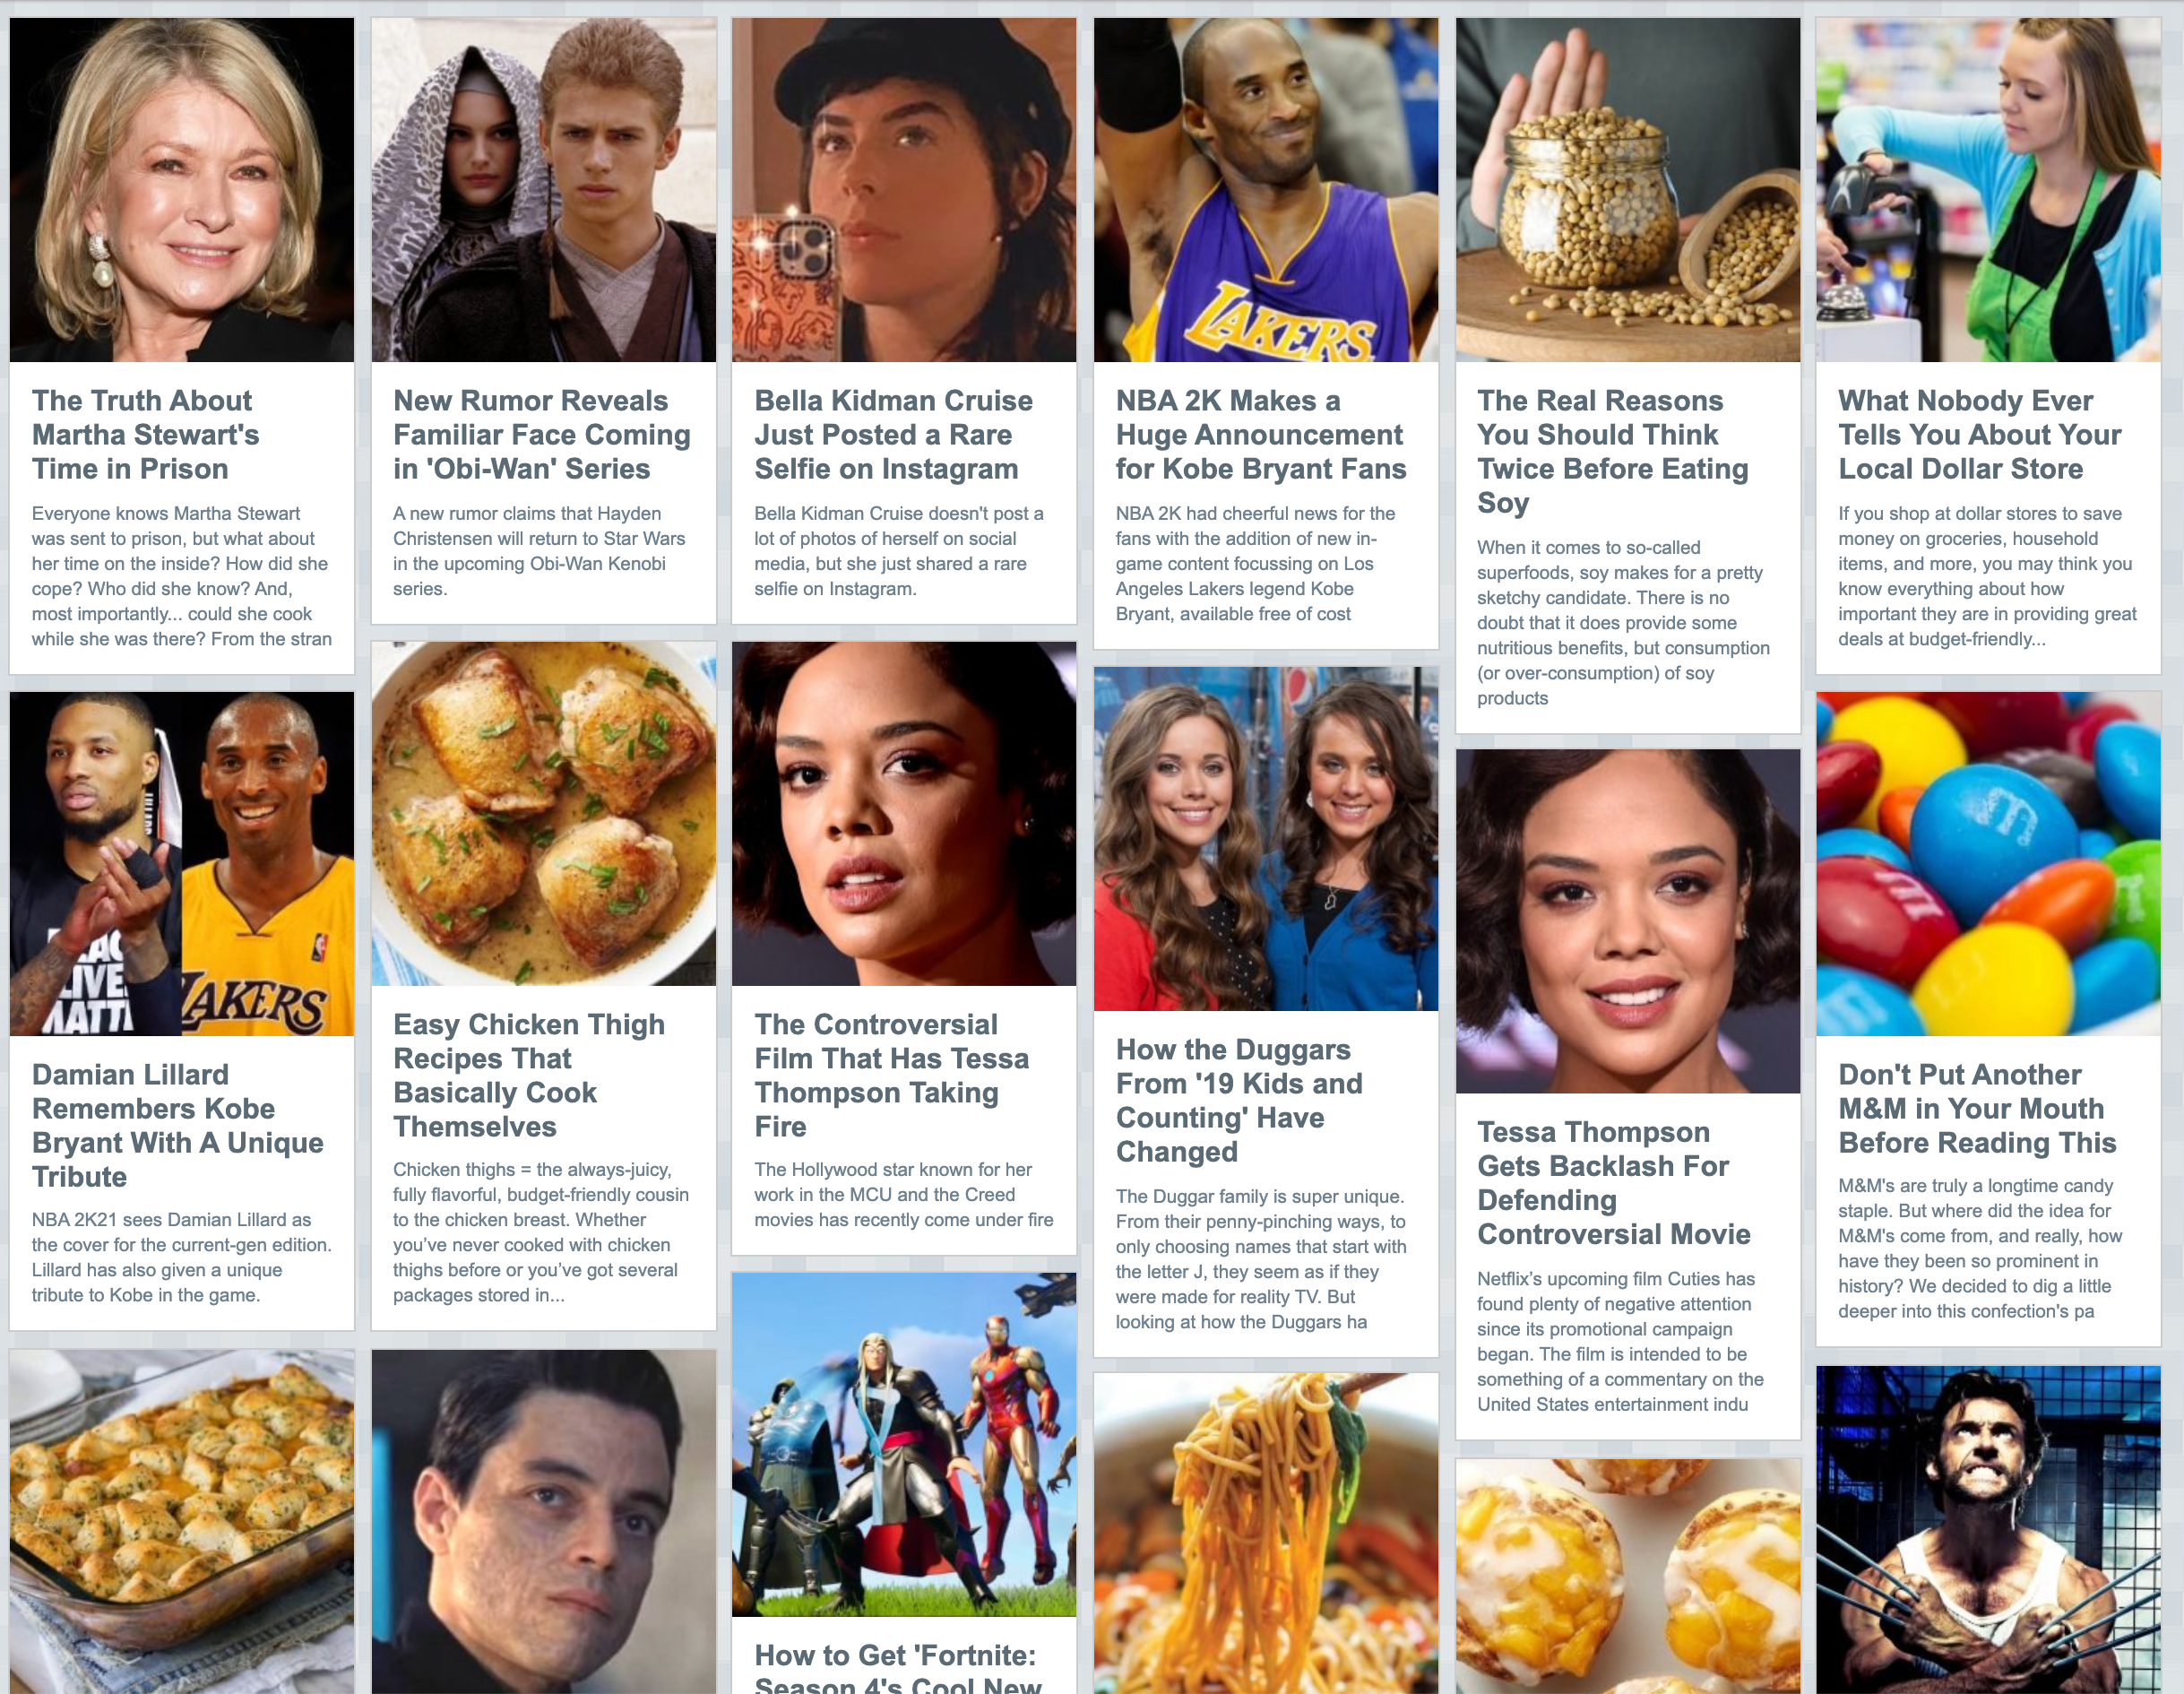 Grid of images and headlines